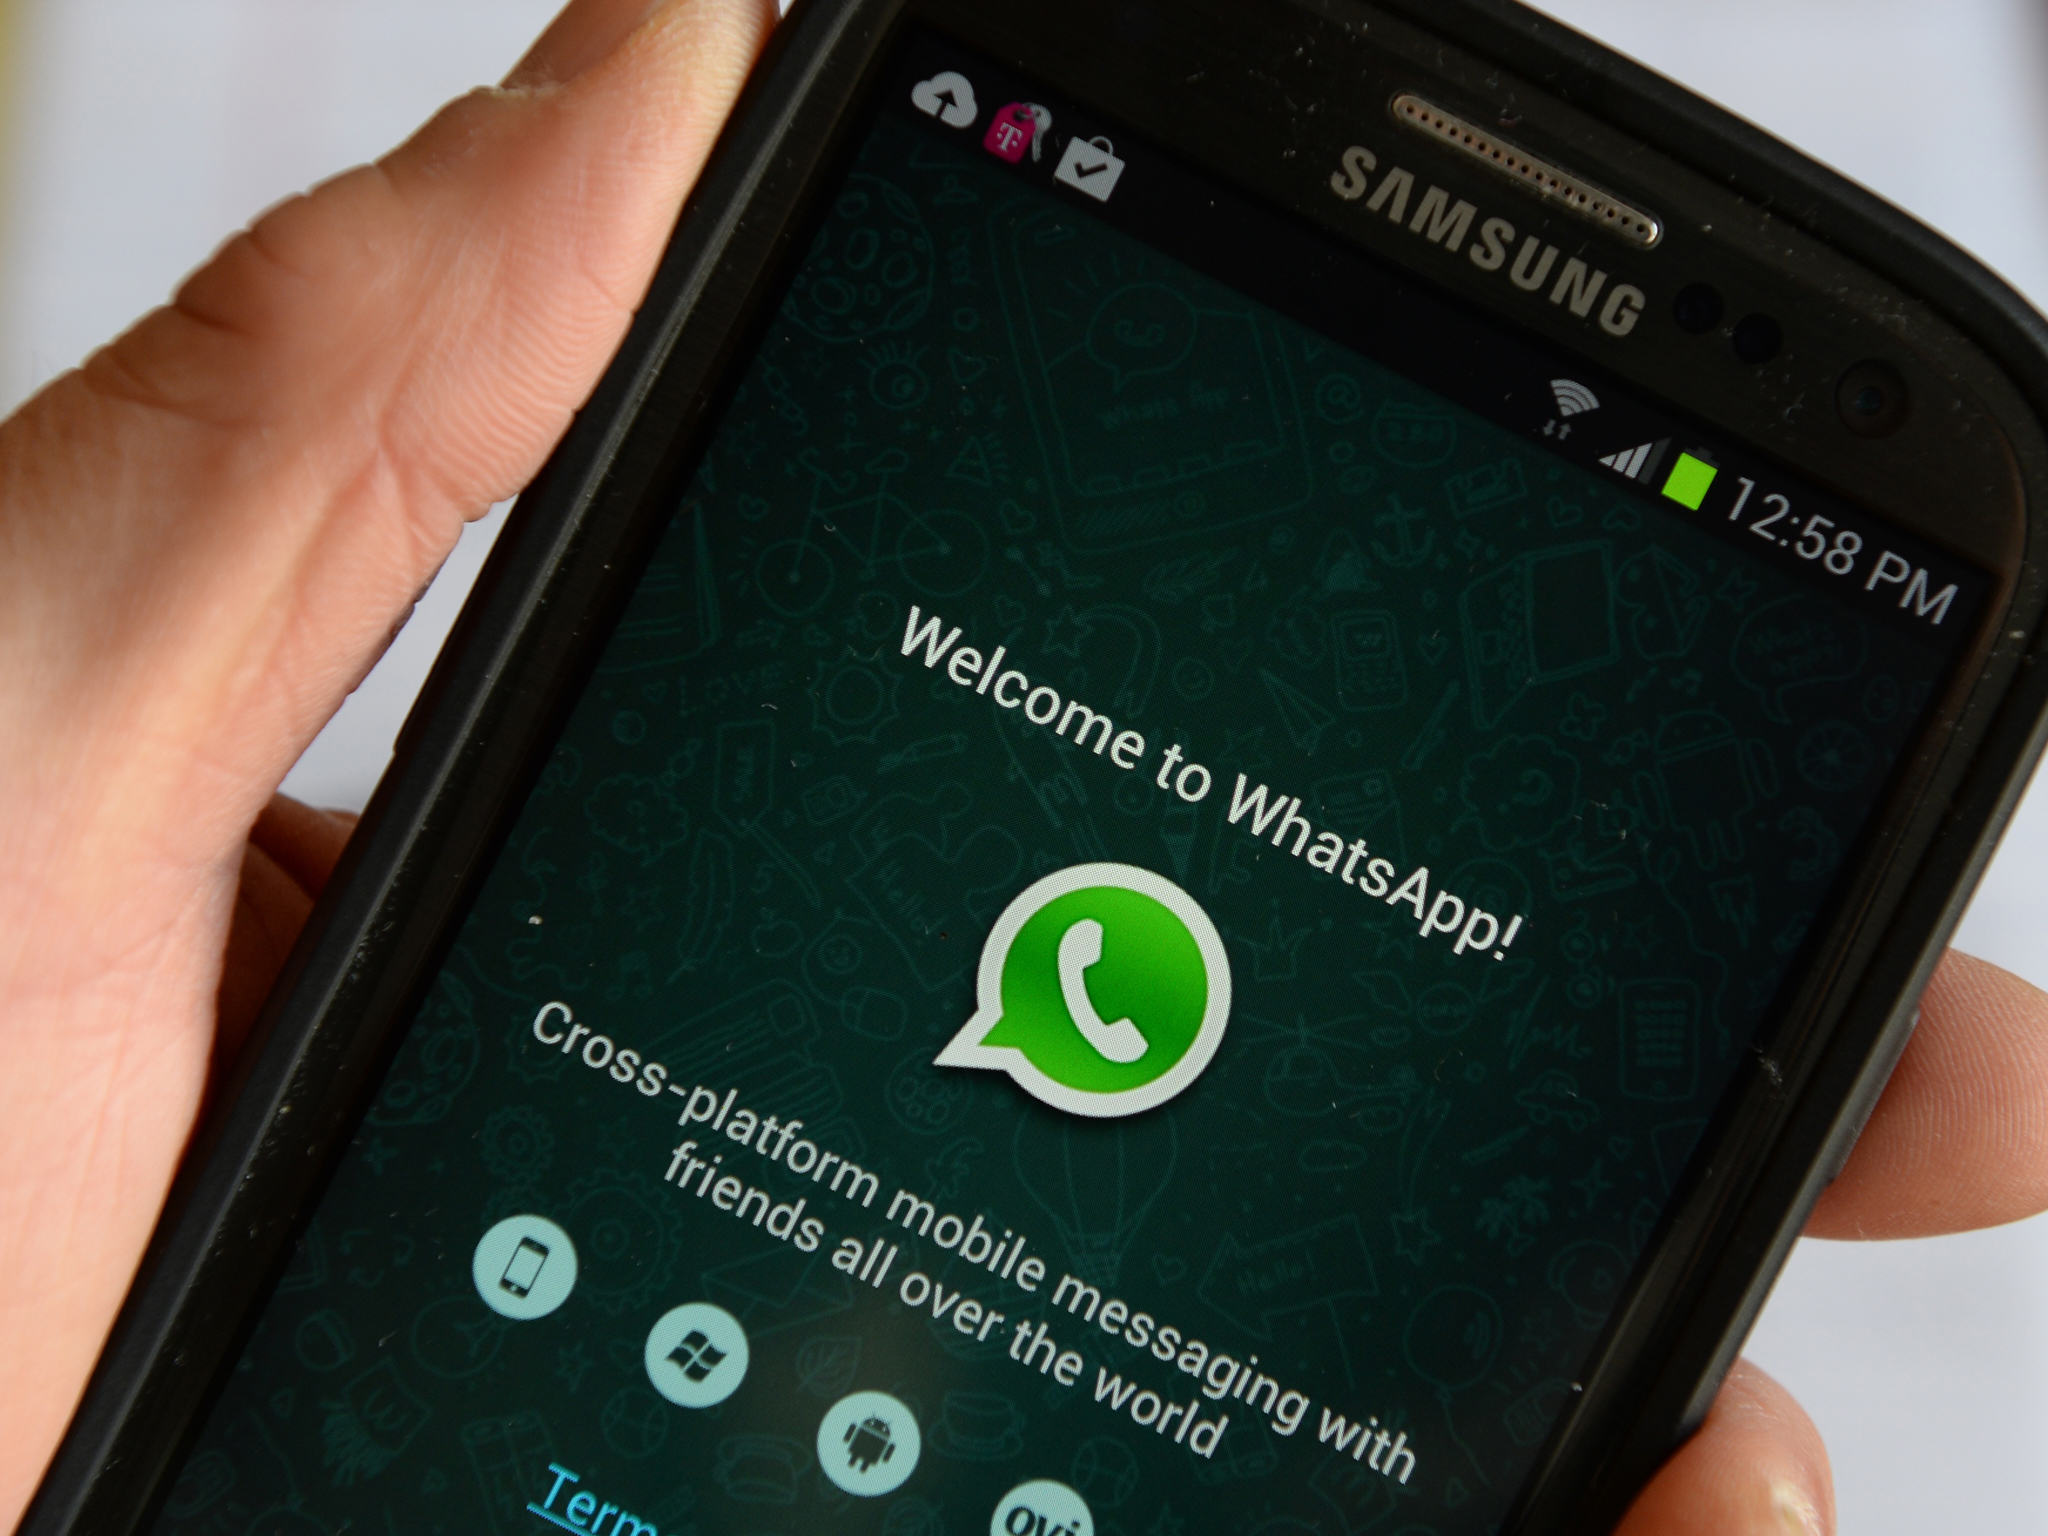 whatsapp Court Says Bosses Can Read Workers Private WhatsApp Messages